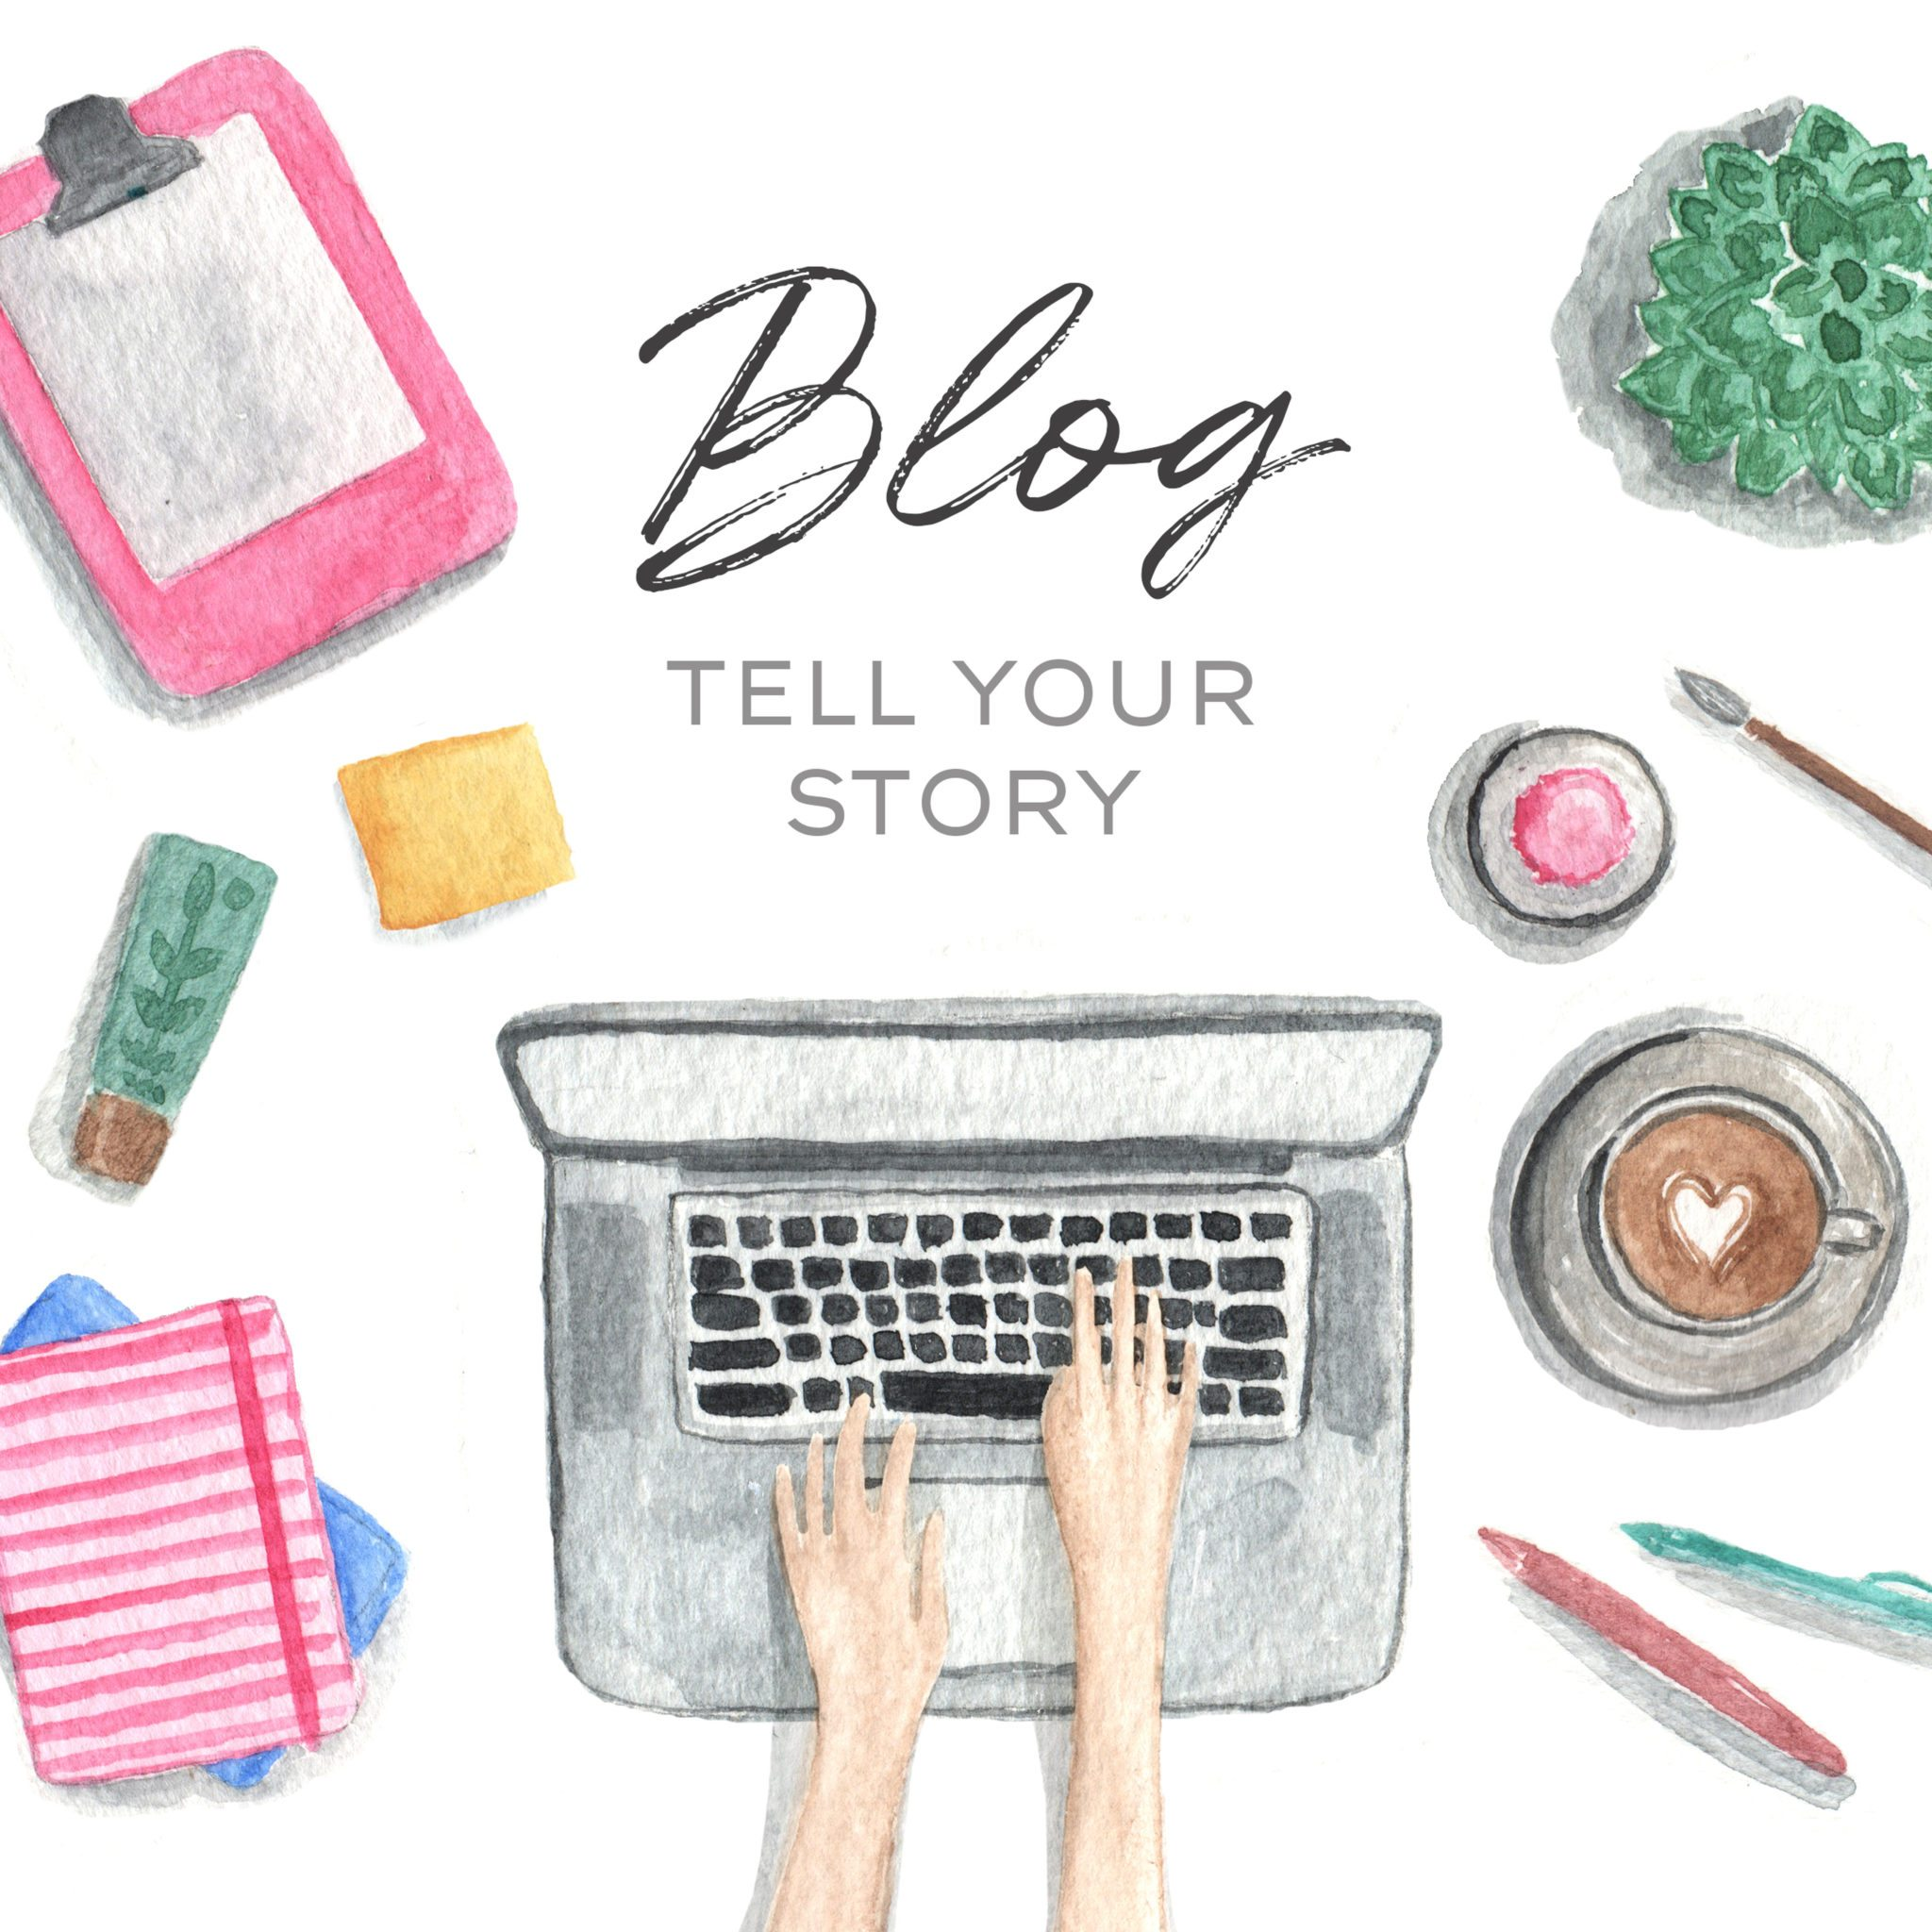 Guest blogging – Come telling us your story.